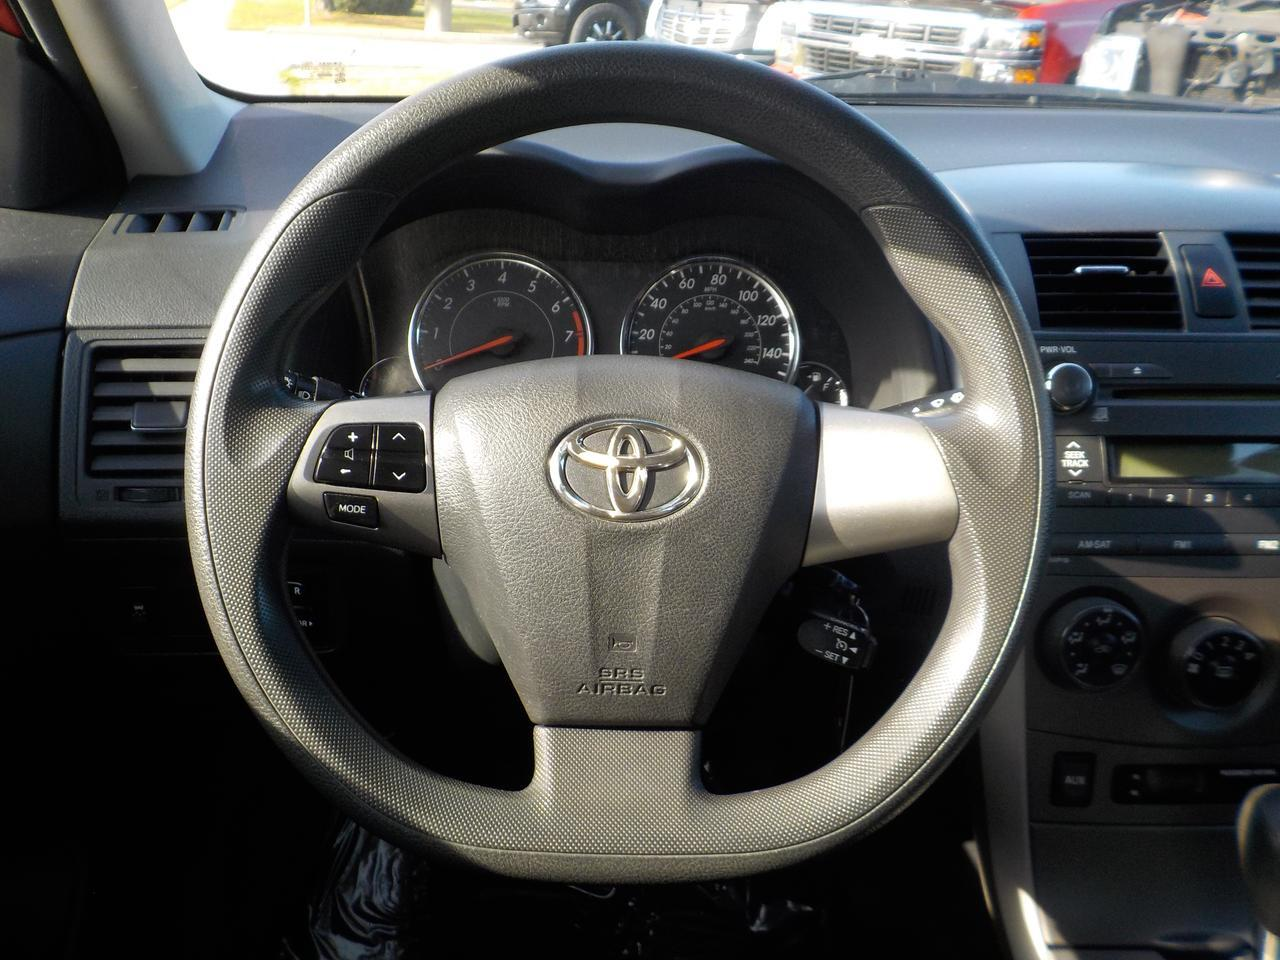 2011 TOYOTA COROLLA S, WARRANTY, SUNROOF, DAYTIME RUNNING LIGHTS, KEYLESS ENTRY! Virginia Beach VA